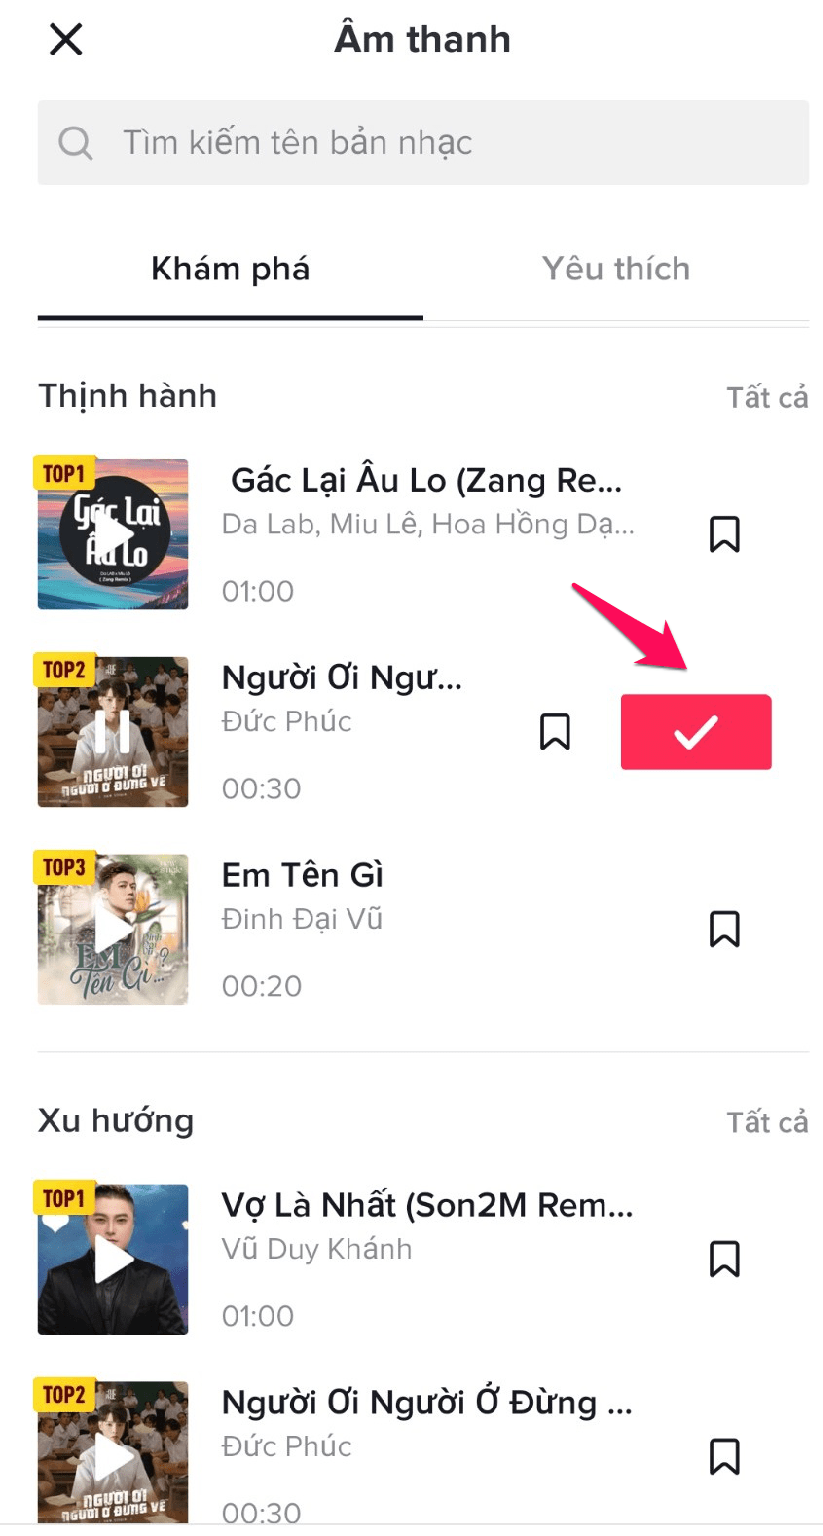 Tiktok-marketing-video-trieu-view-001-012